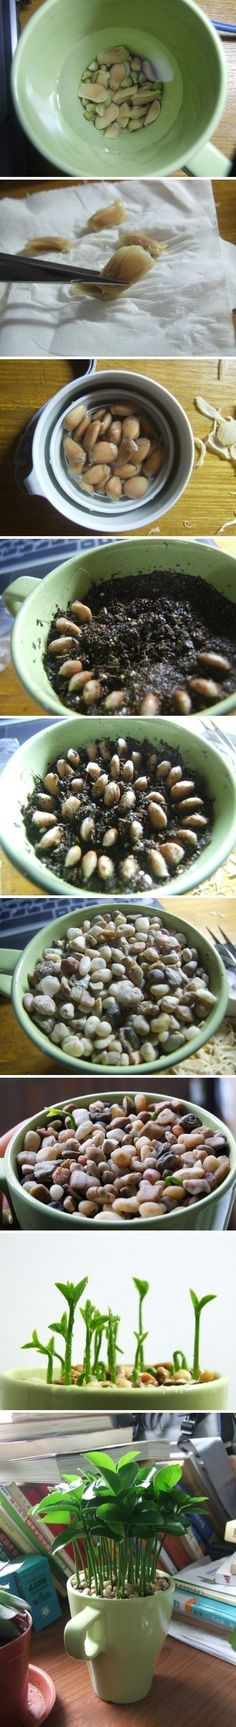 Plant lemon seeds. Lemon leaves smell so good.~ wow going to try this!